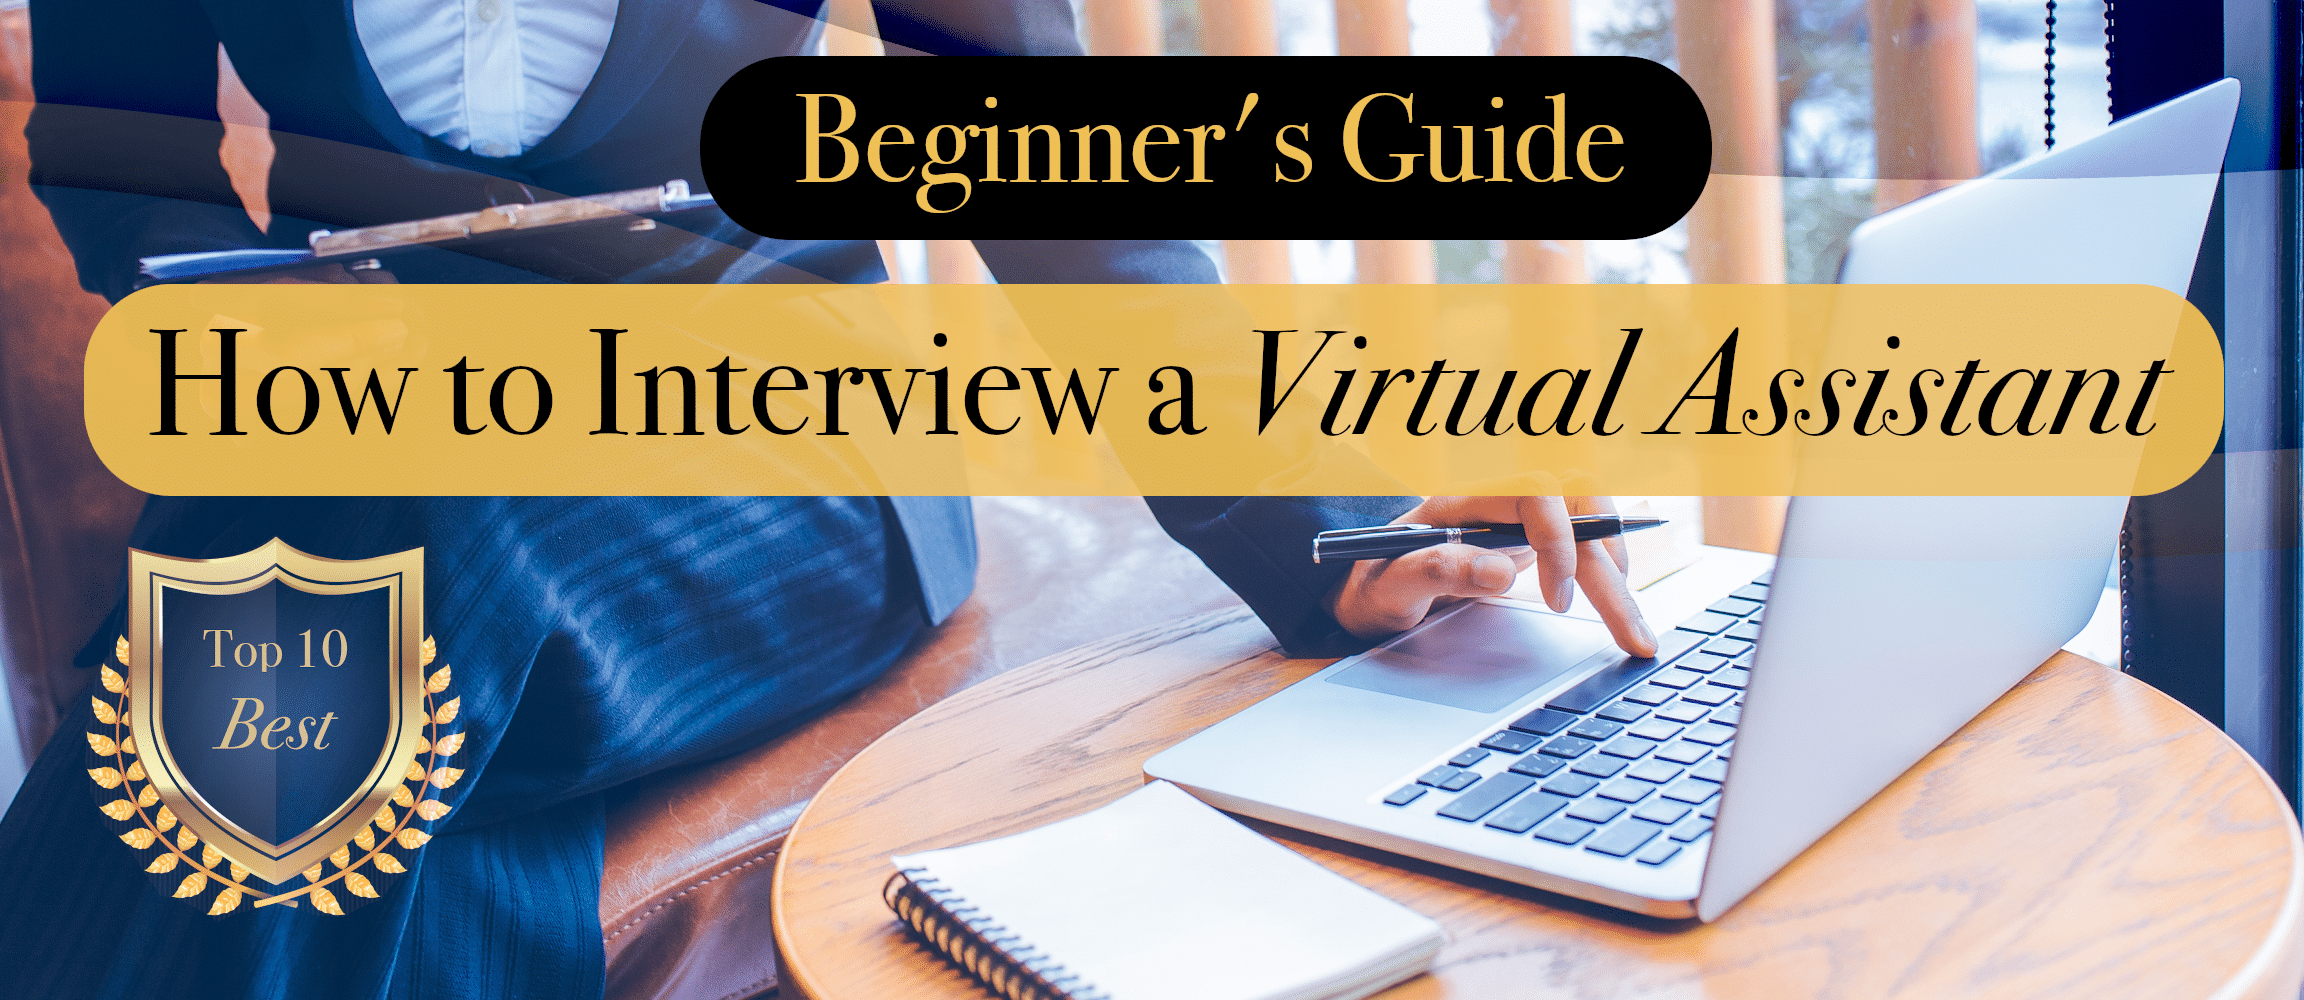 Beginner's Guide to Interviewing a Virtual Assistant